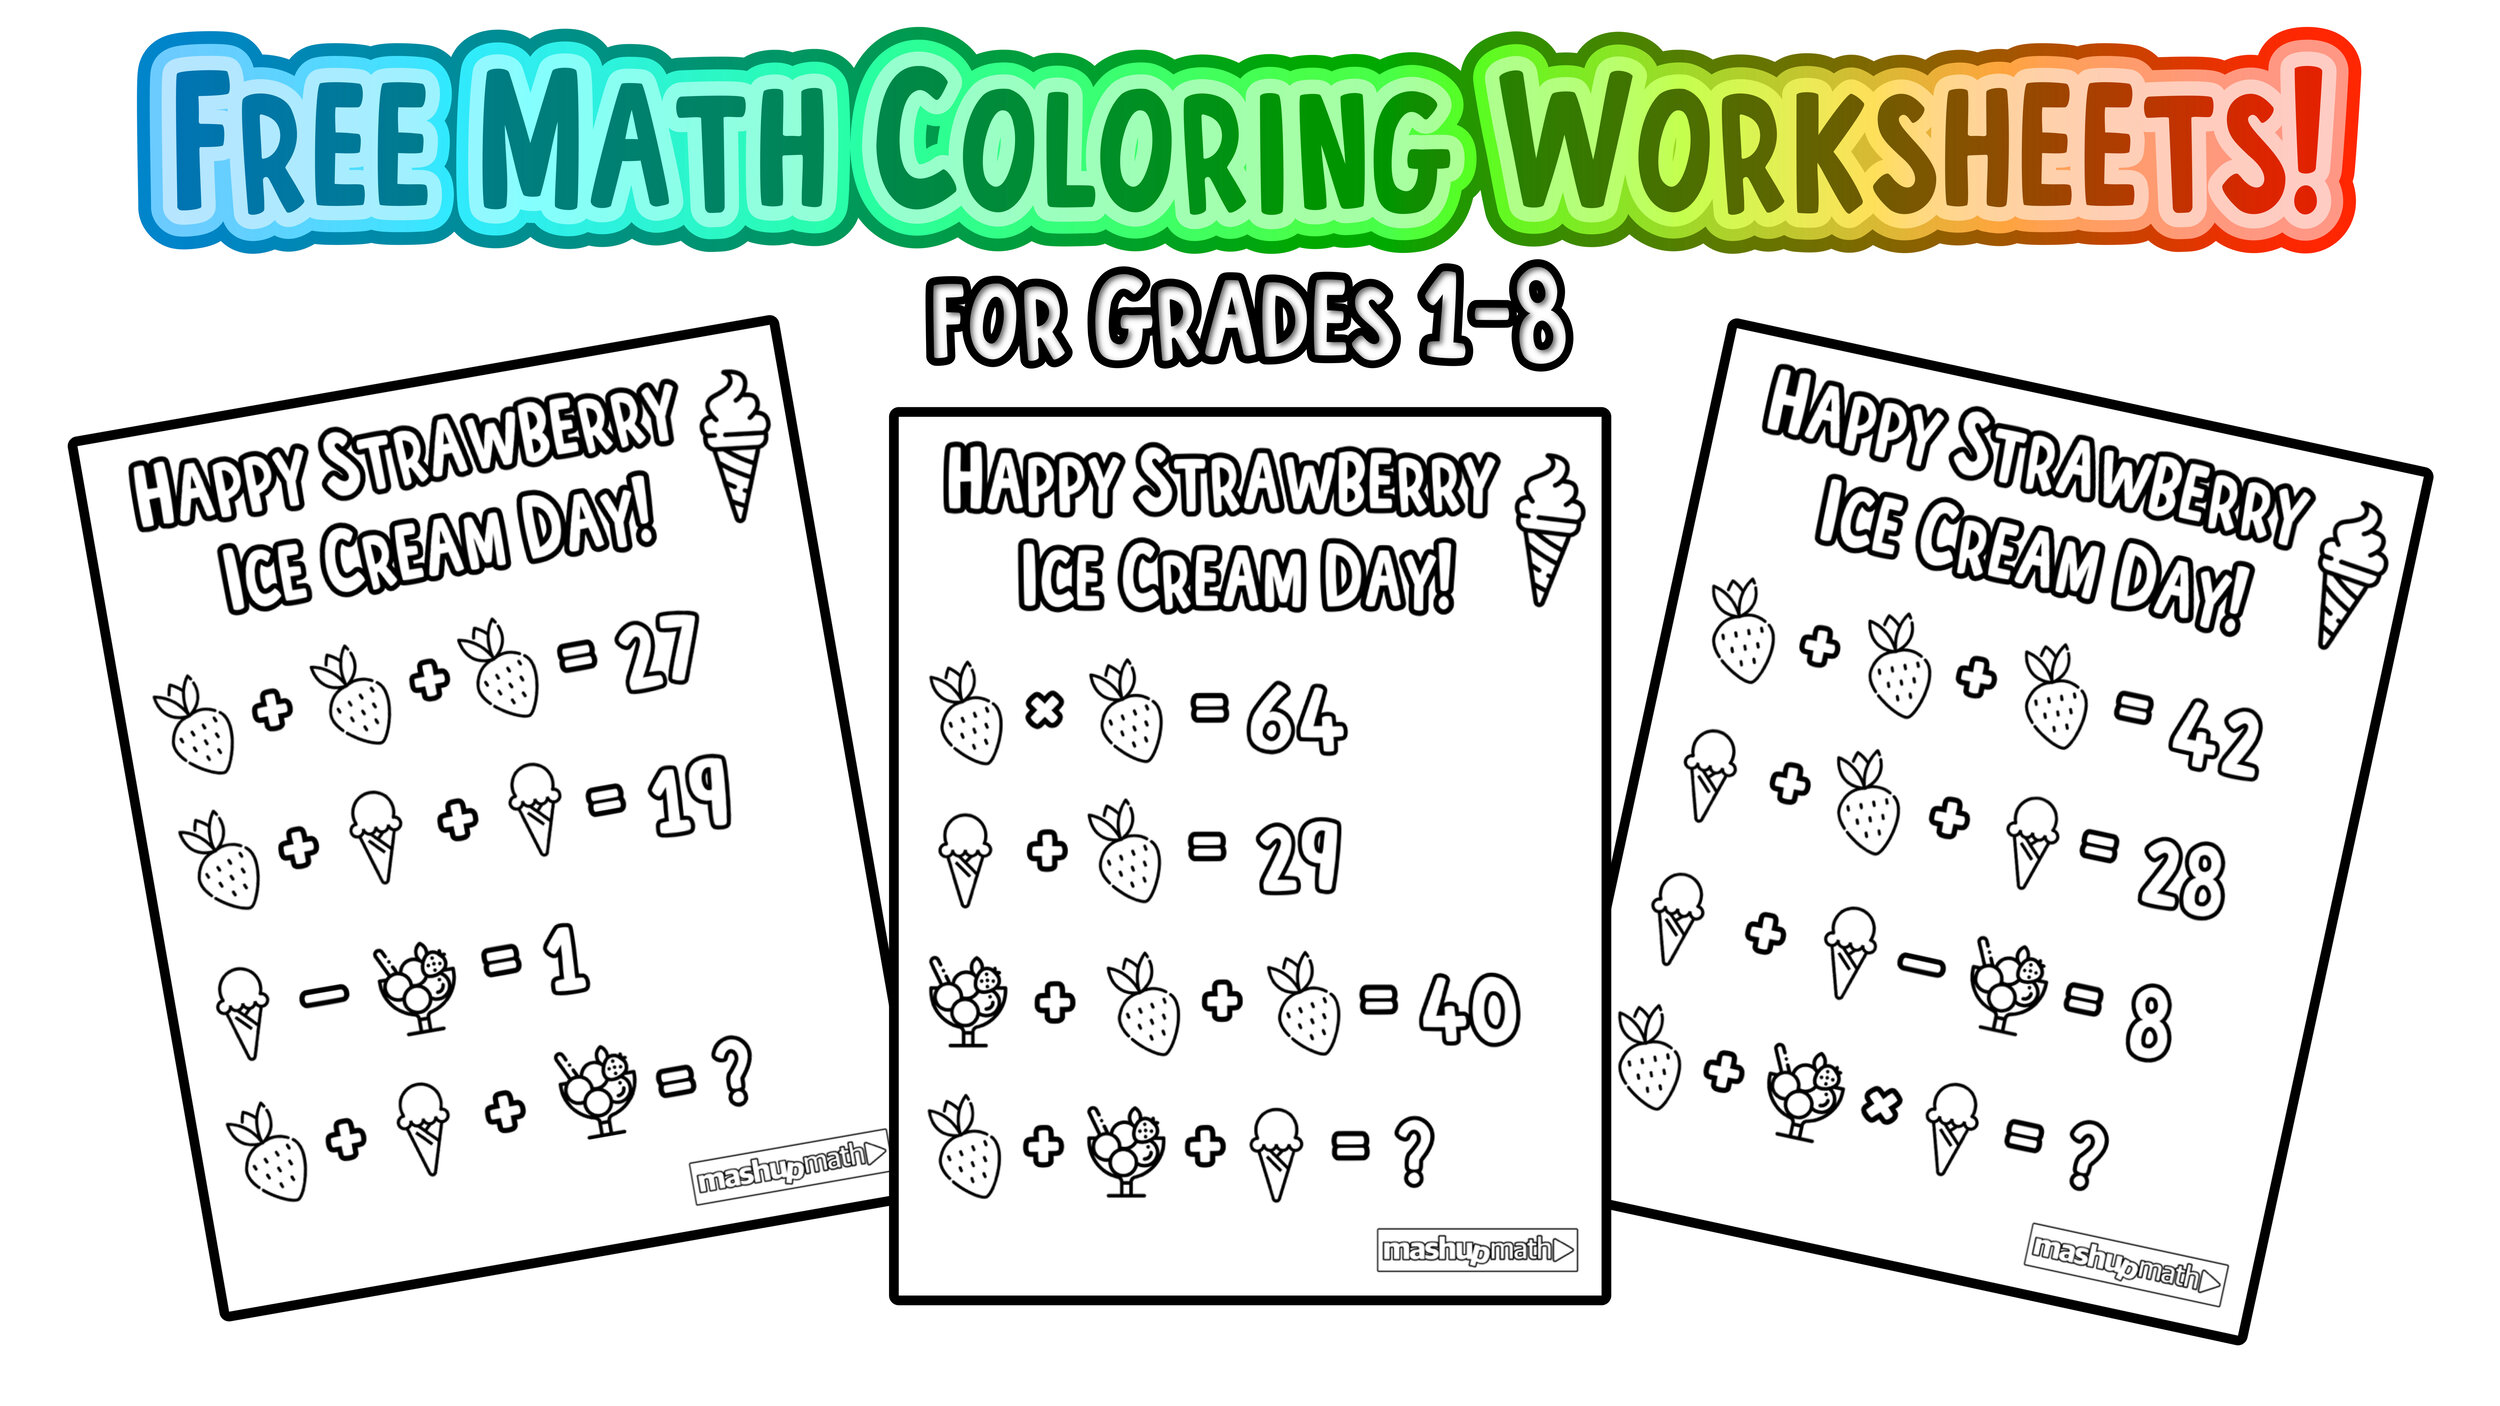 Free Math Coloring Pages For Grades 1-8 — Mashup Math